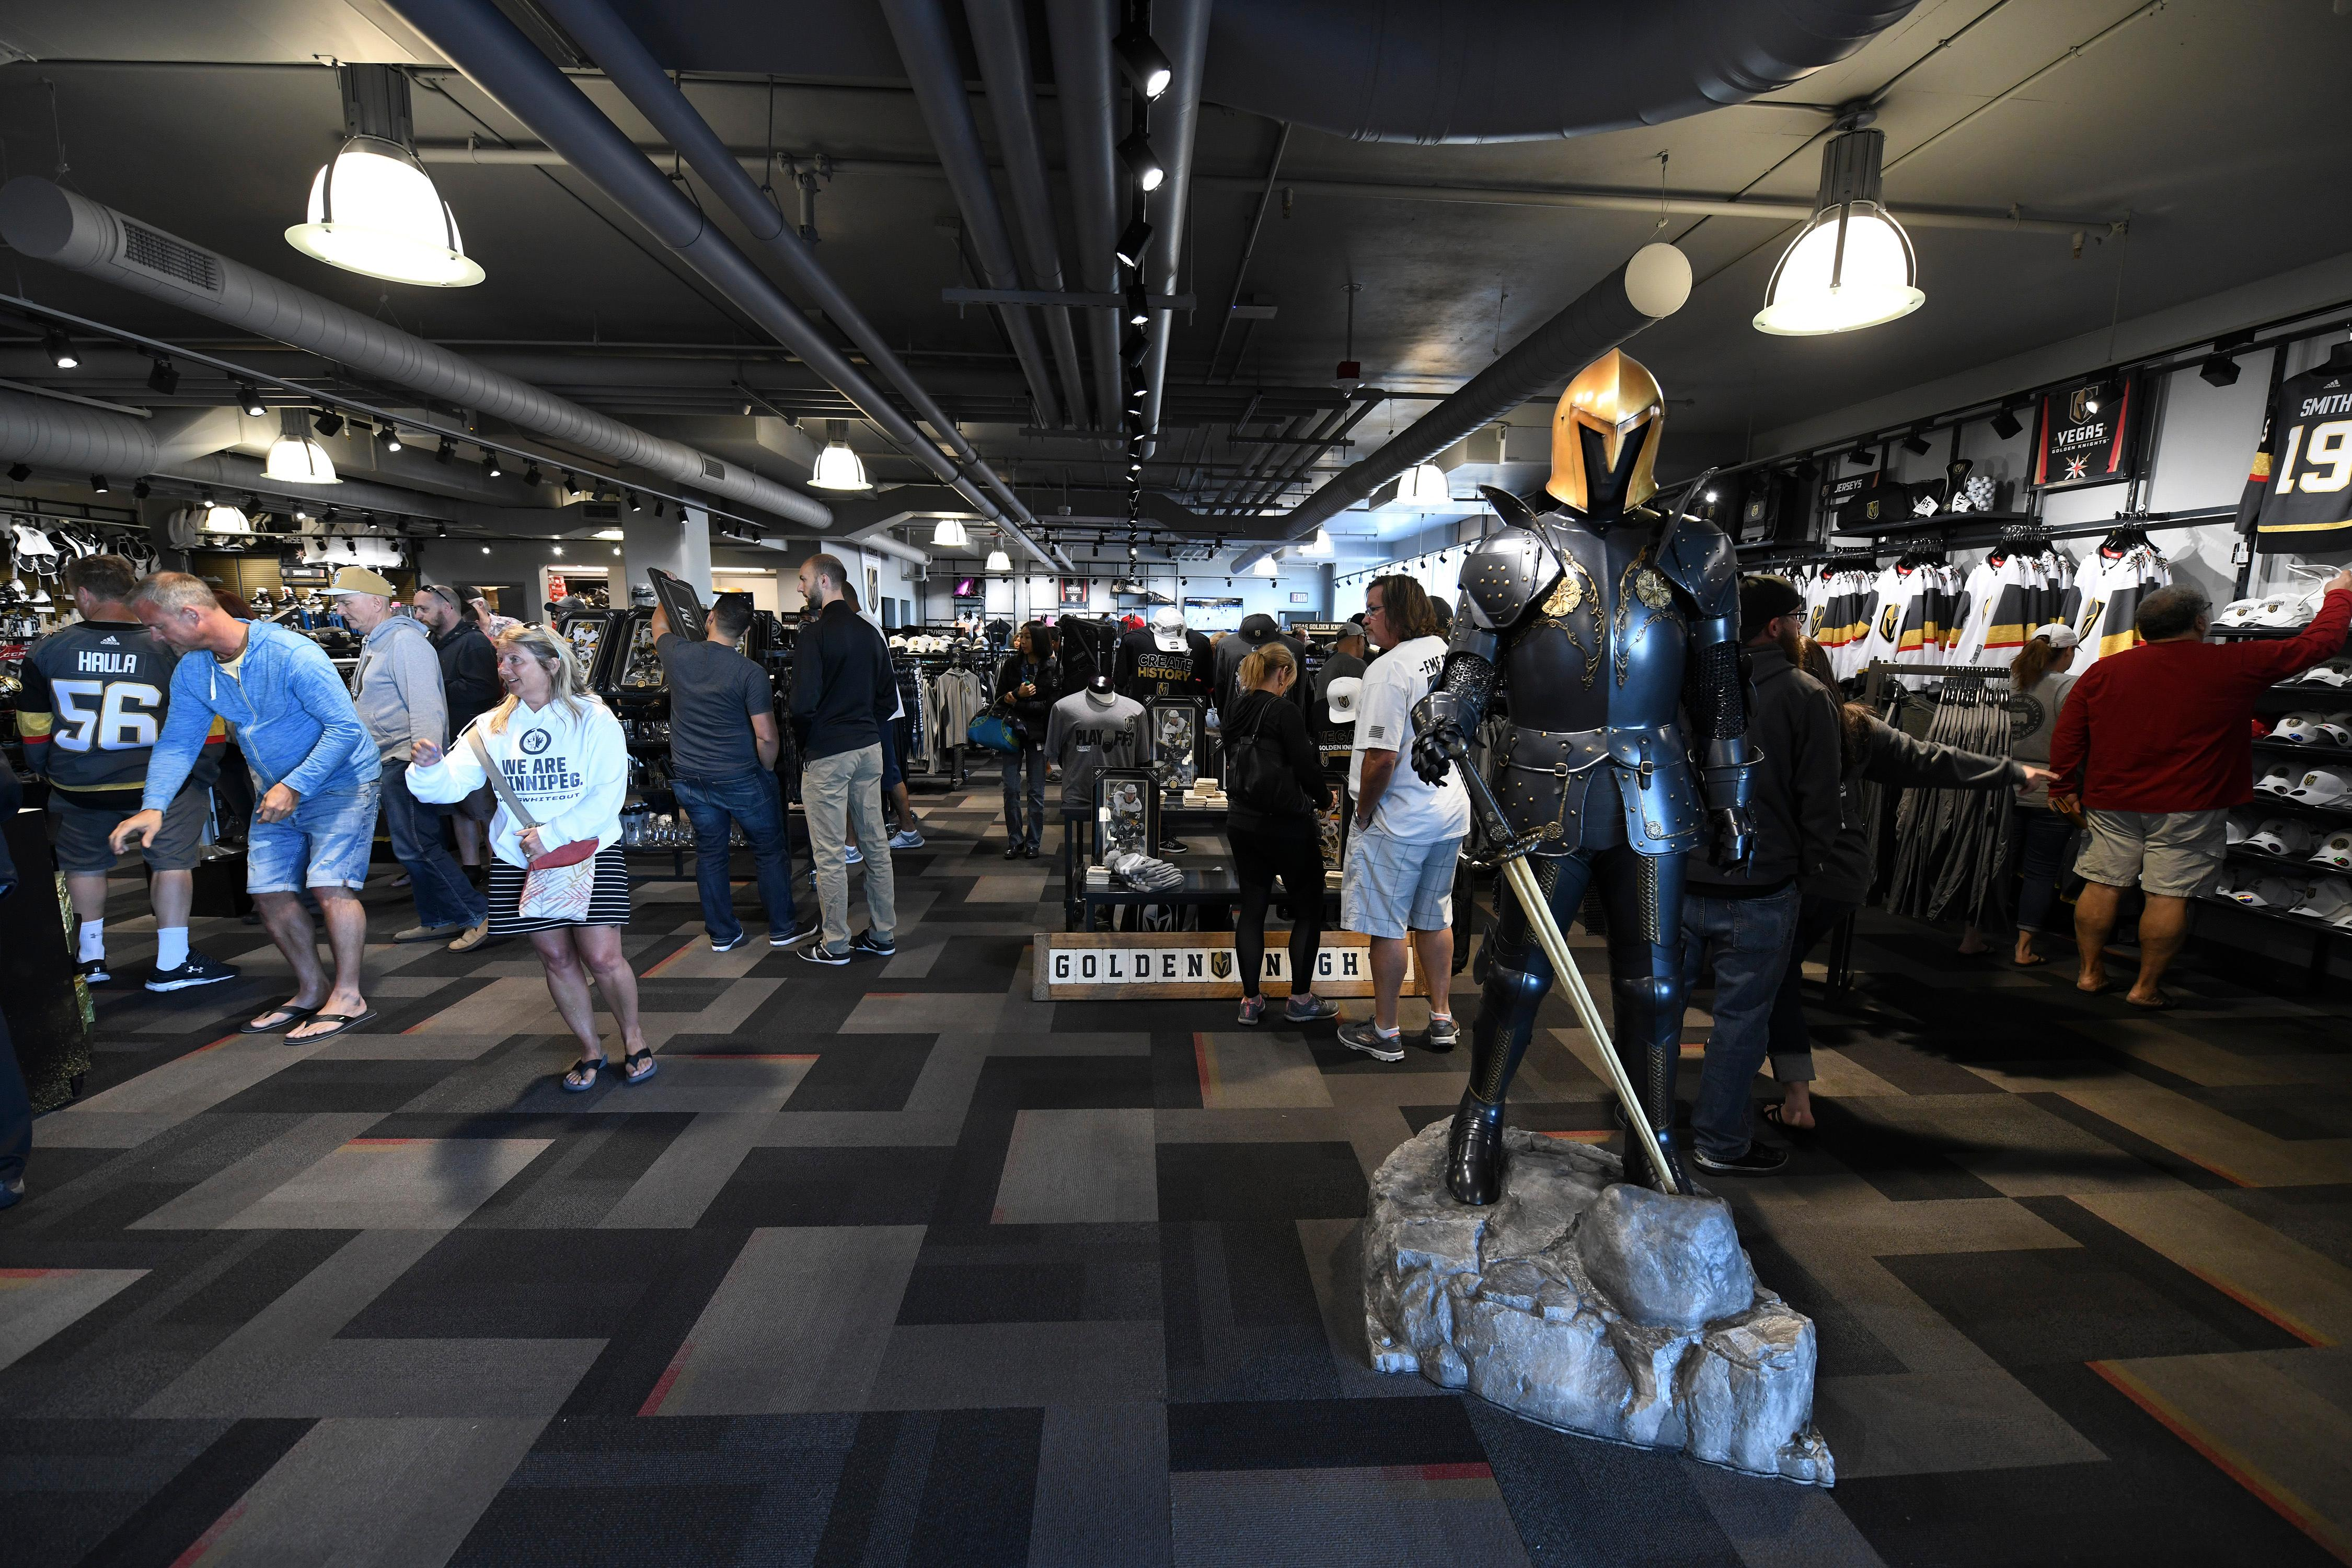 Fans shop in The Arsenal, the Vegas Golden Knights gift shop, Friday, April 20, 2018, at City National Arena in Las Vegas. CREDIT: Sam Morris/Las Vegas News Bureau